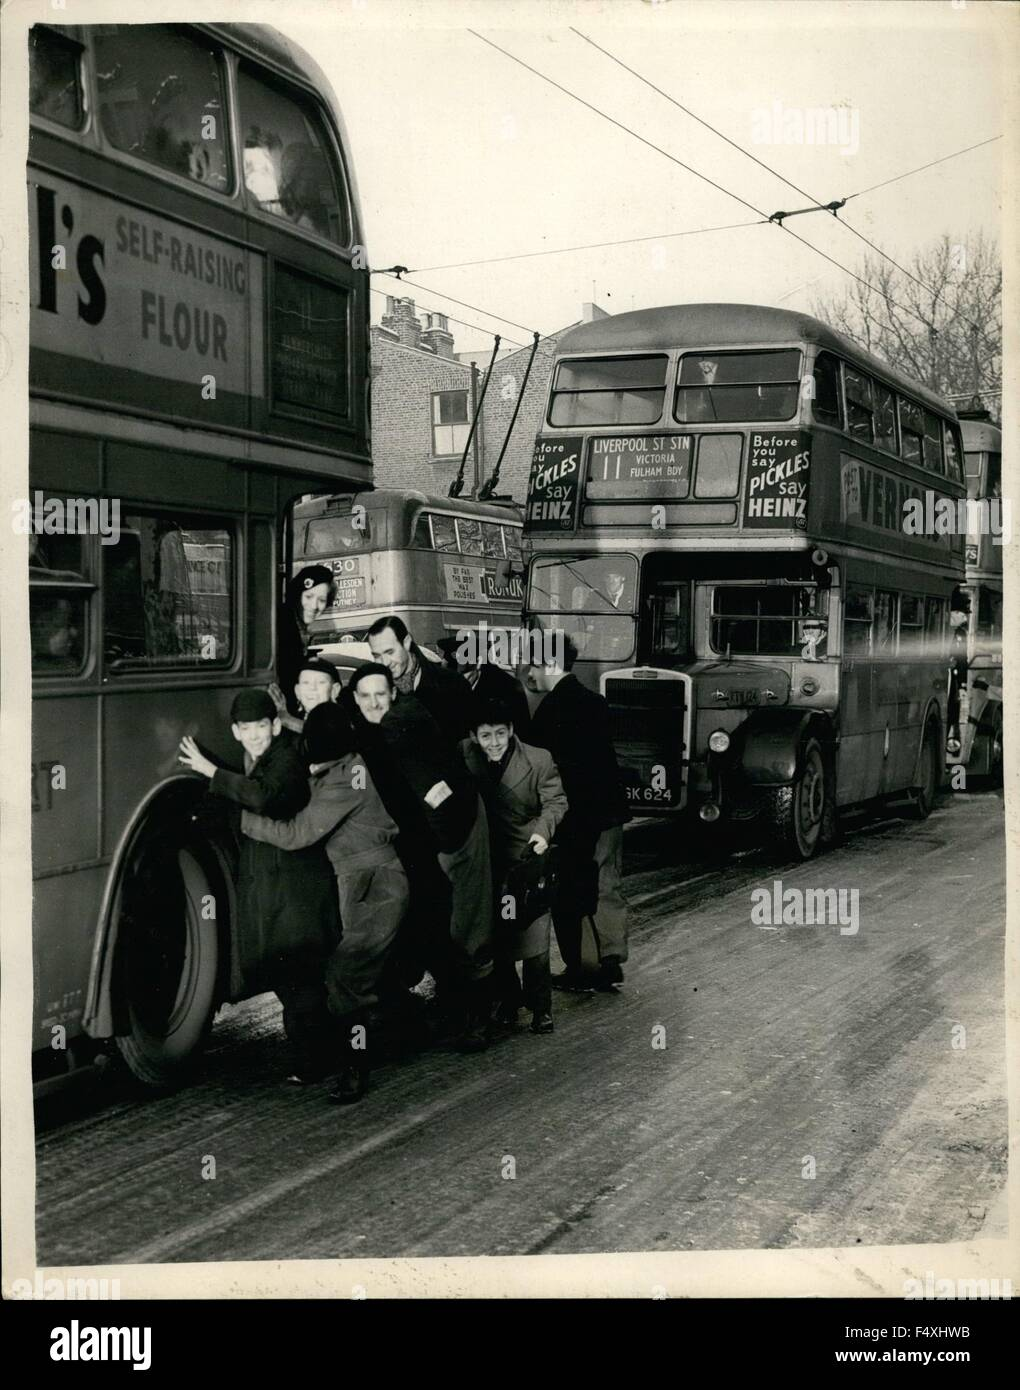 1954 - Ice-bound roads dislocate traffic One of the worst traffic hold-ups in the history of London Transport in - Stock Image